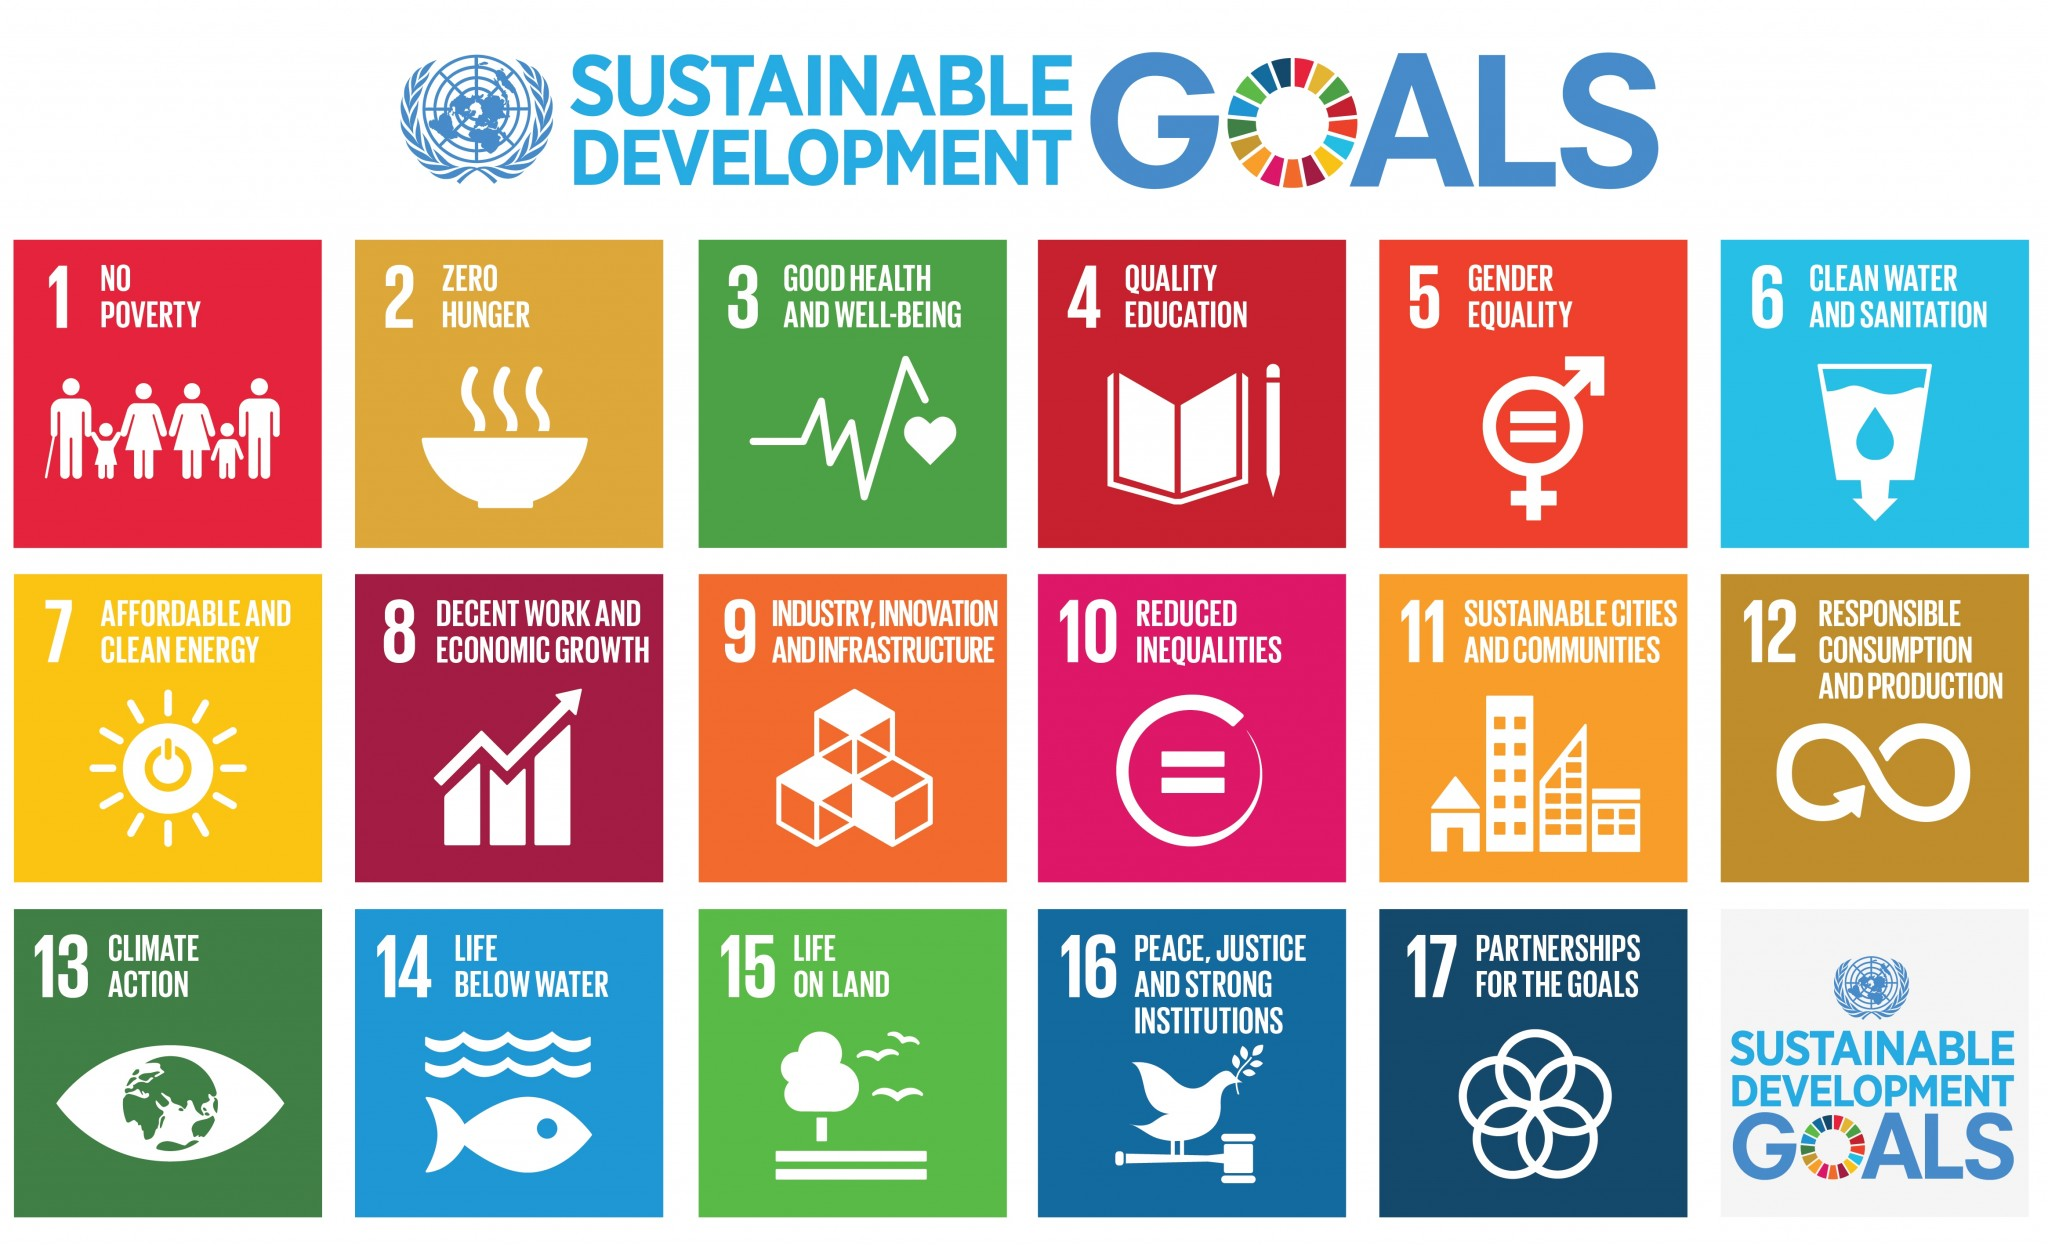 United Nations Sustainable Development Goals -- http://impakter.com/wp-content/uploads/2015/10/SDG-Poster_A4.jpg